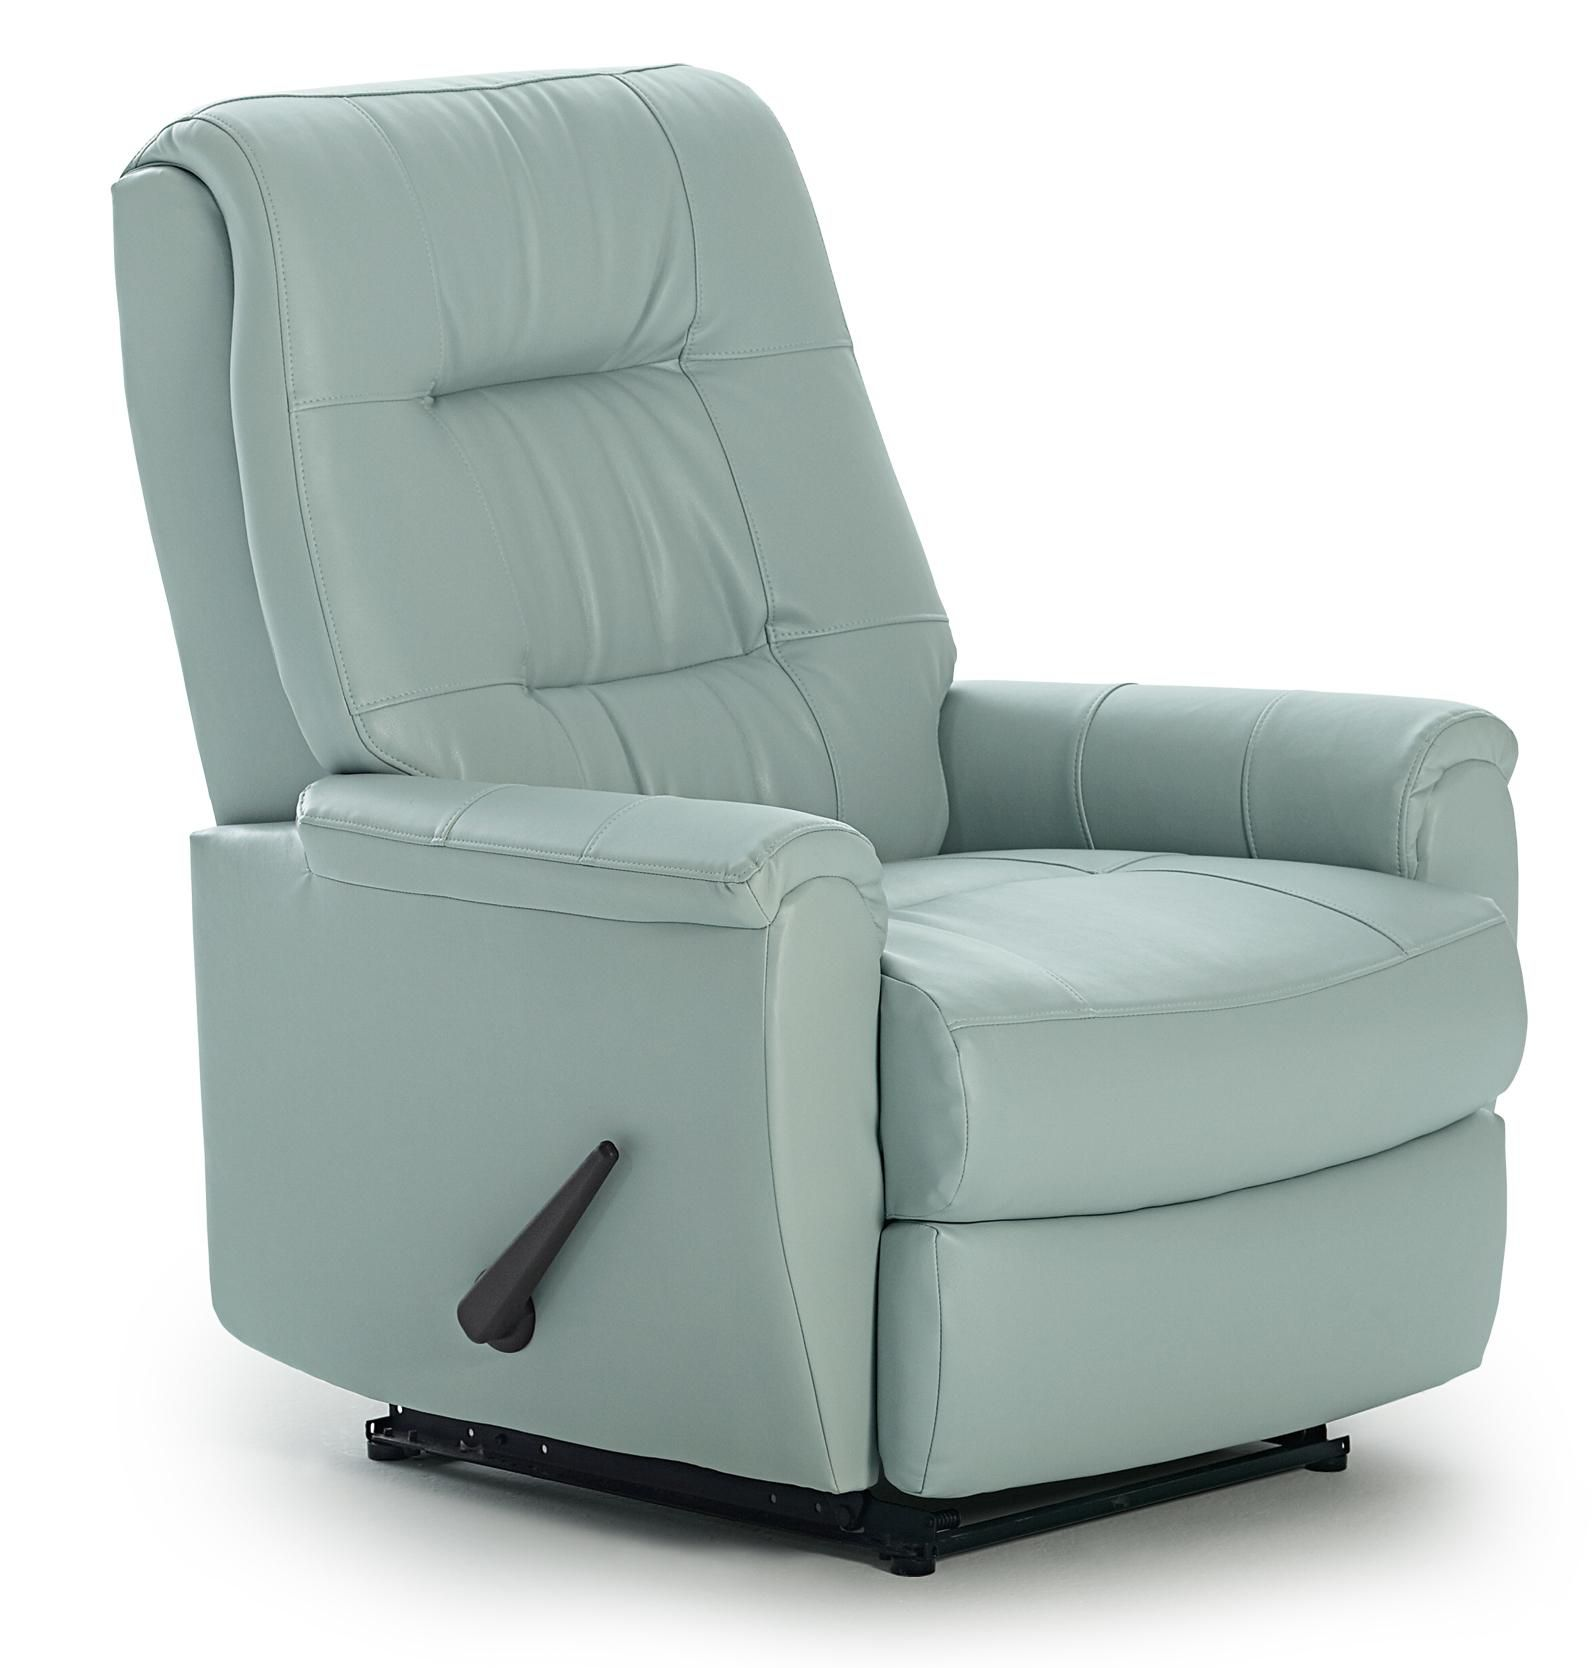 Recliners Petite Swivel Rocker Recliner By Best Home